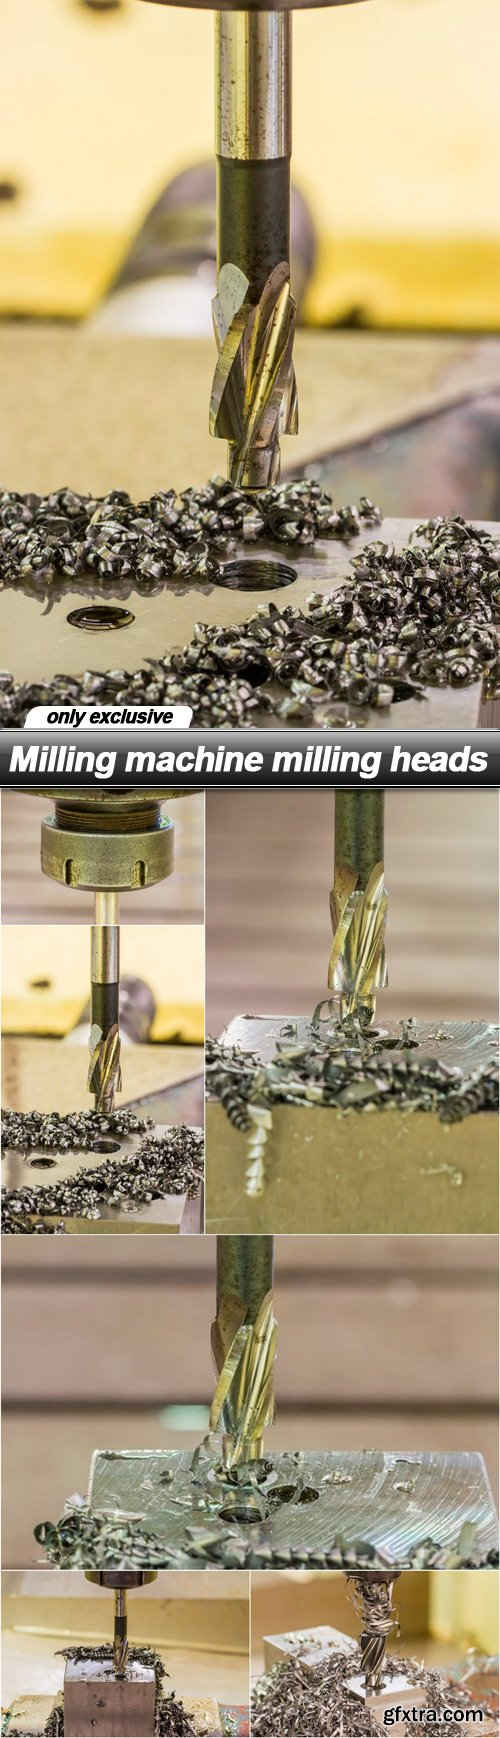 Milling machine milling heads - 7 UHQ JPEG